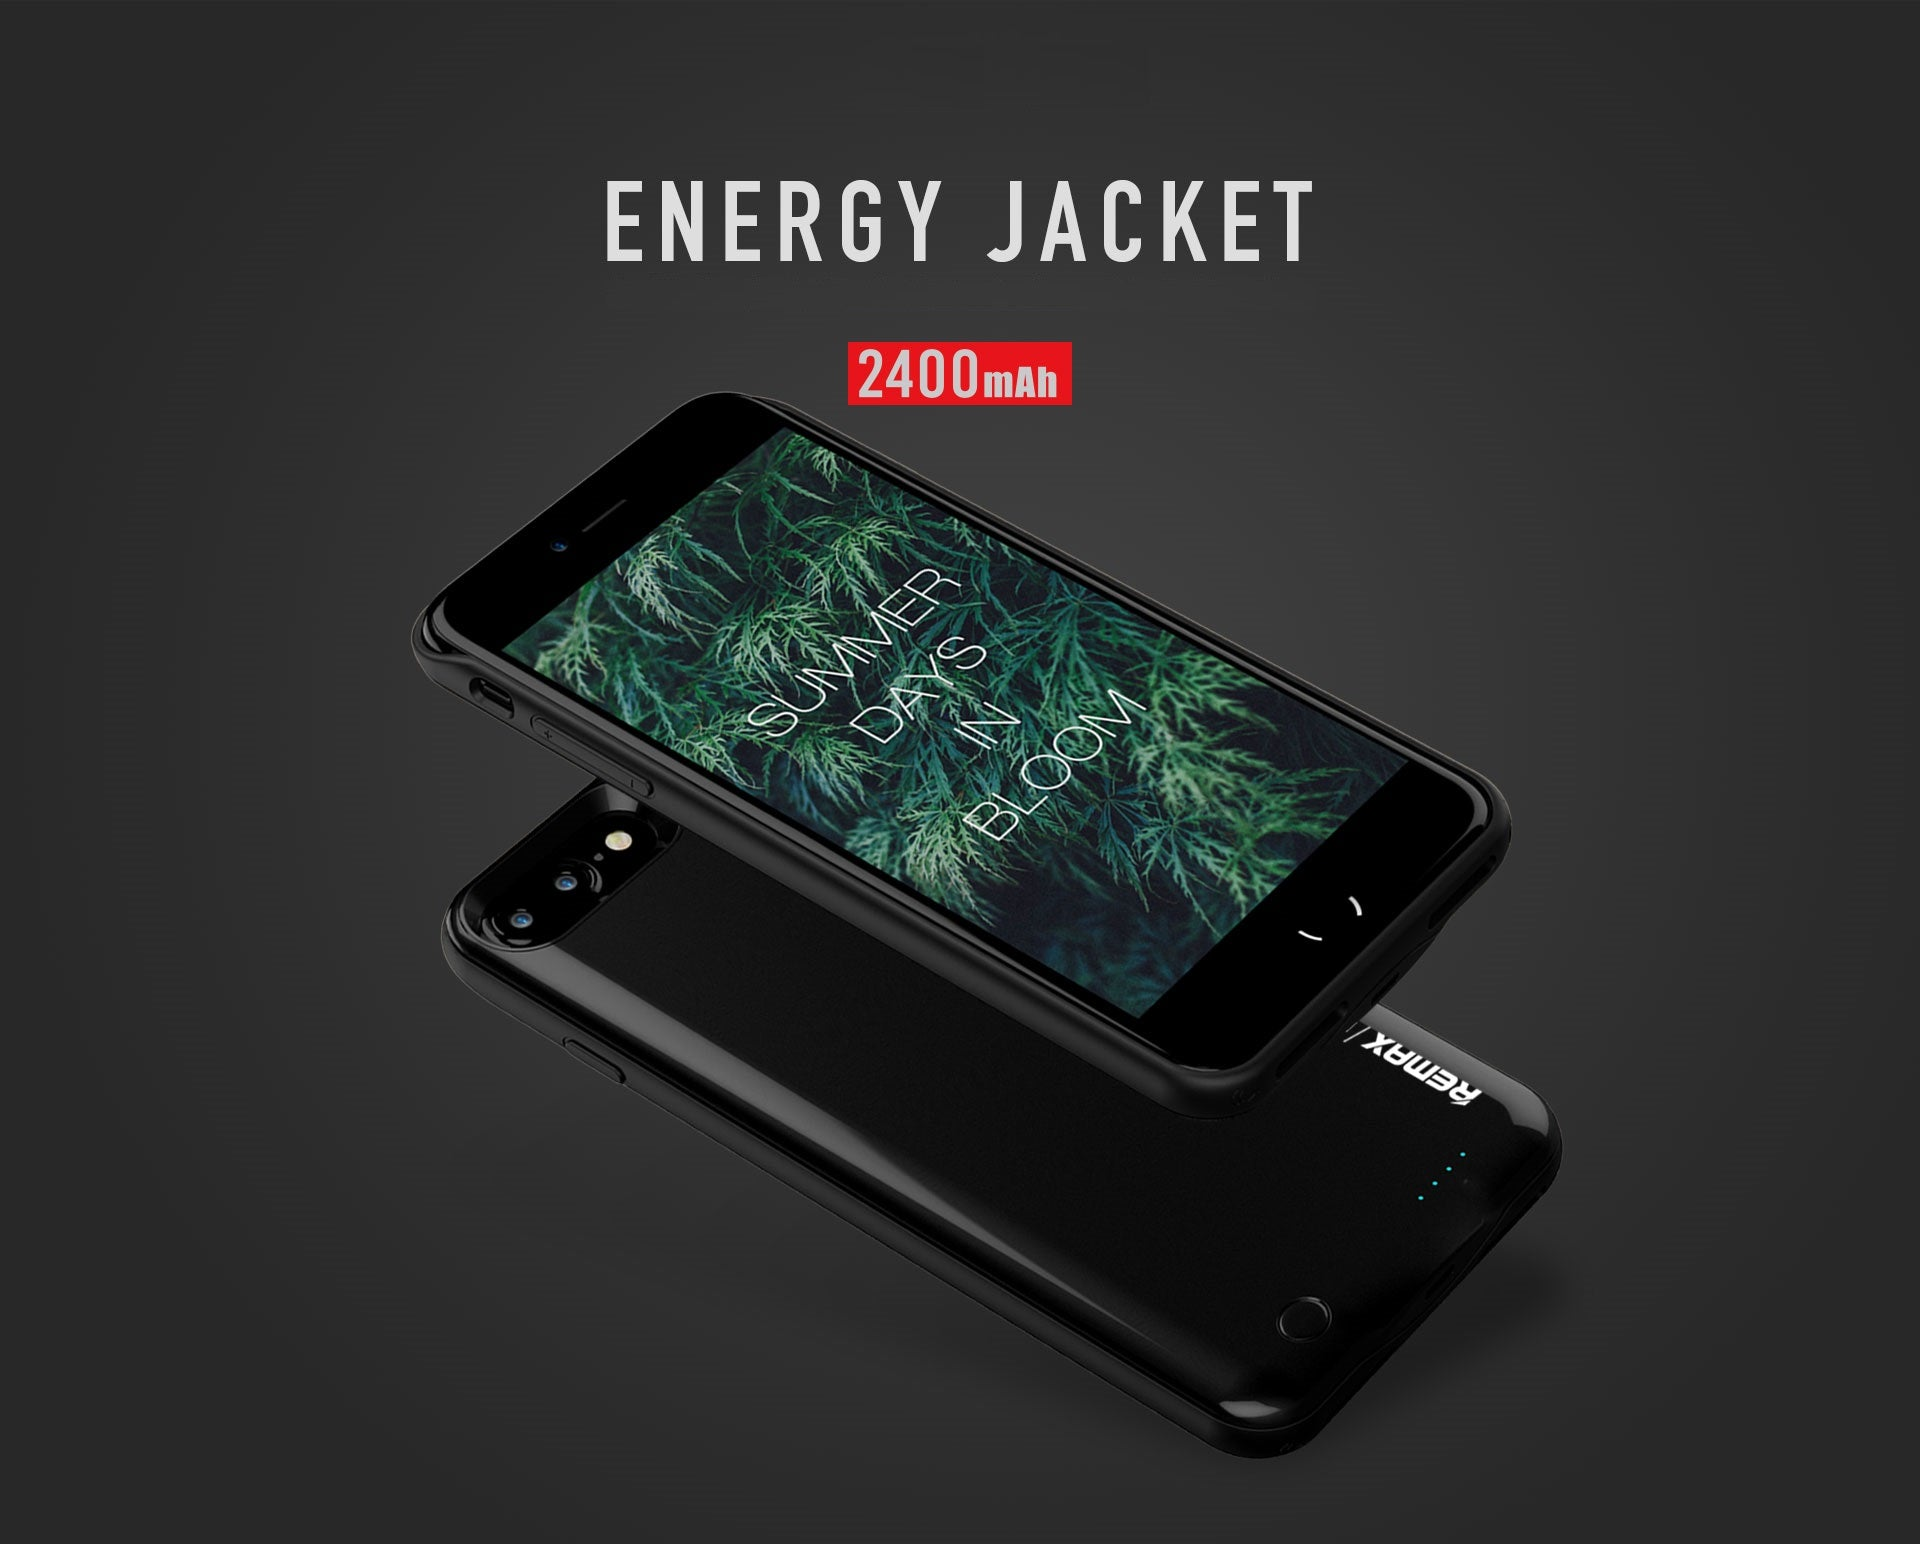 REMAX Official Store - PowerBank Penen Energy Jacket For iPhone 7